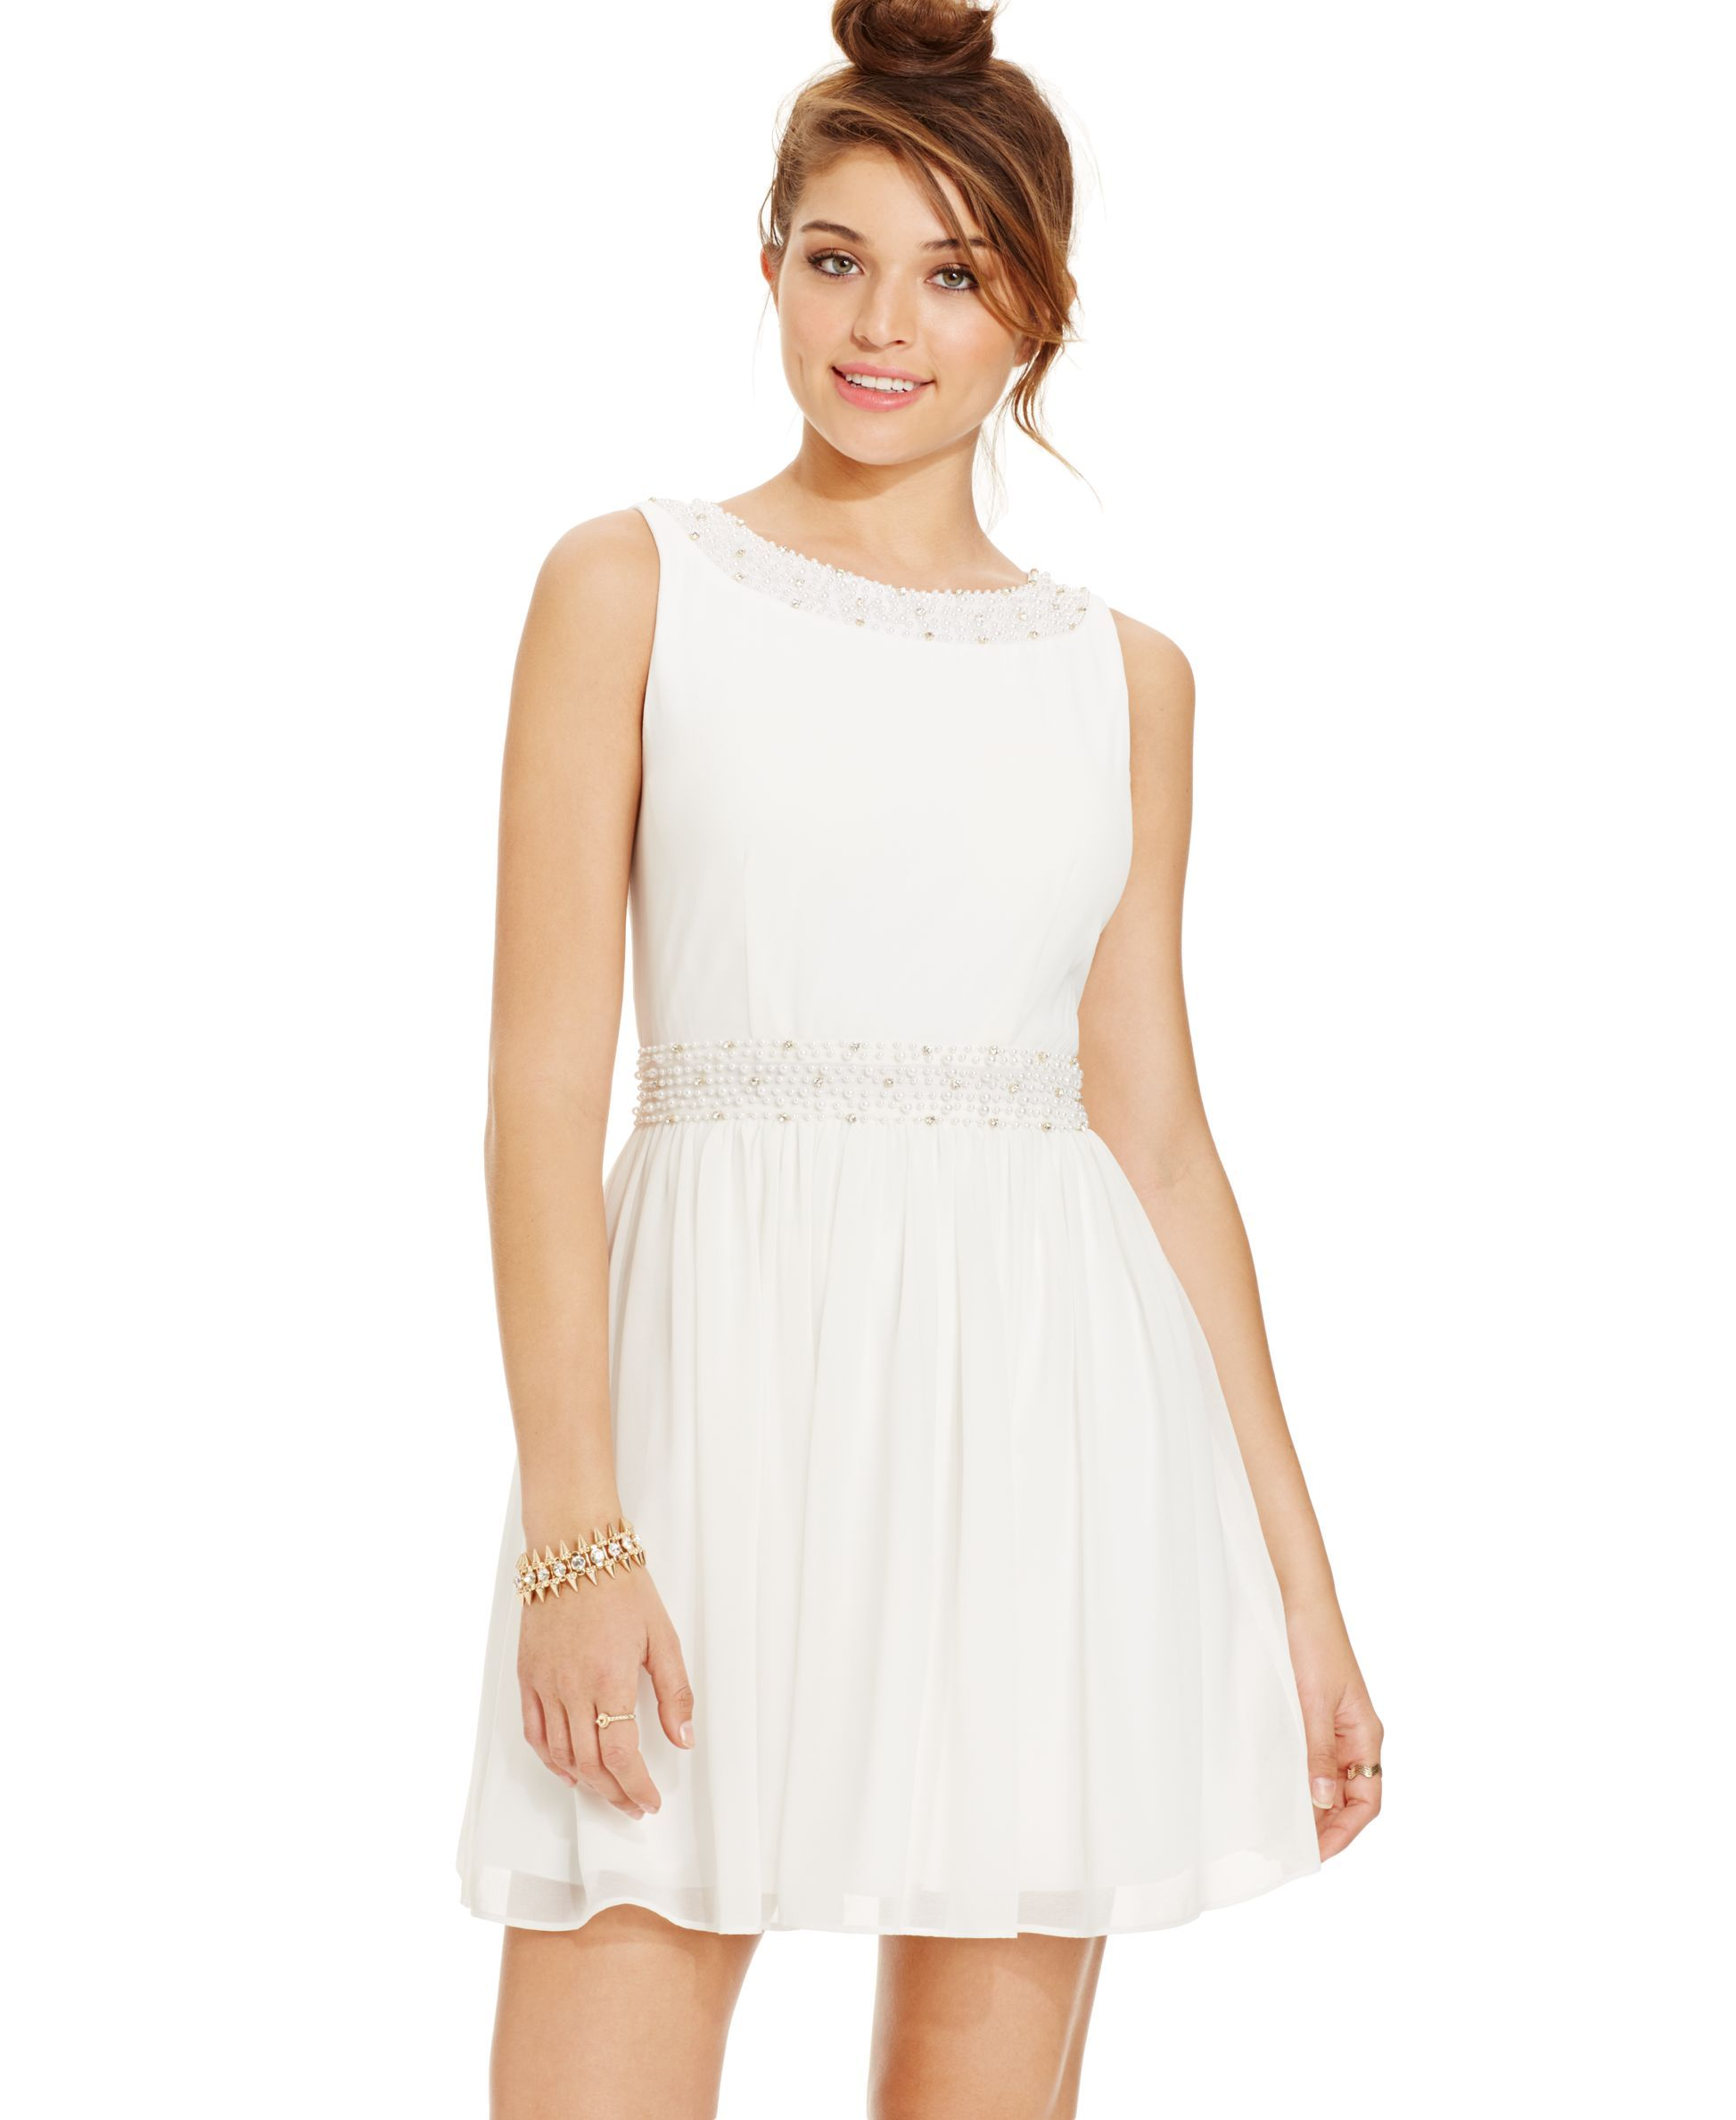 City Studios Juniors' Embellished Sleeveless Dress Fit